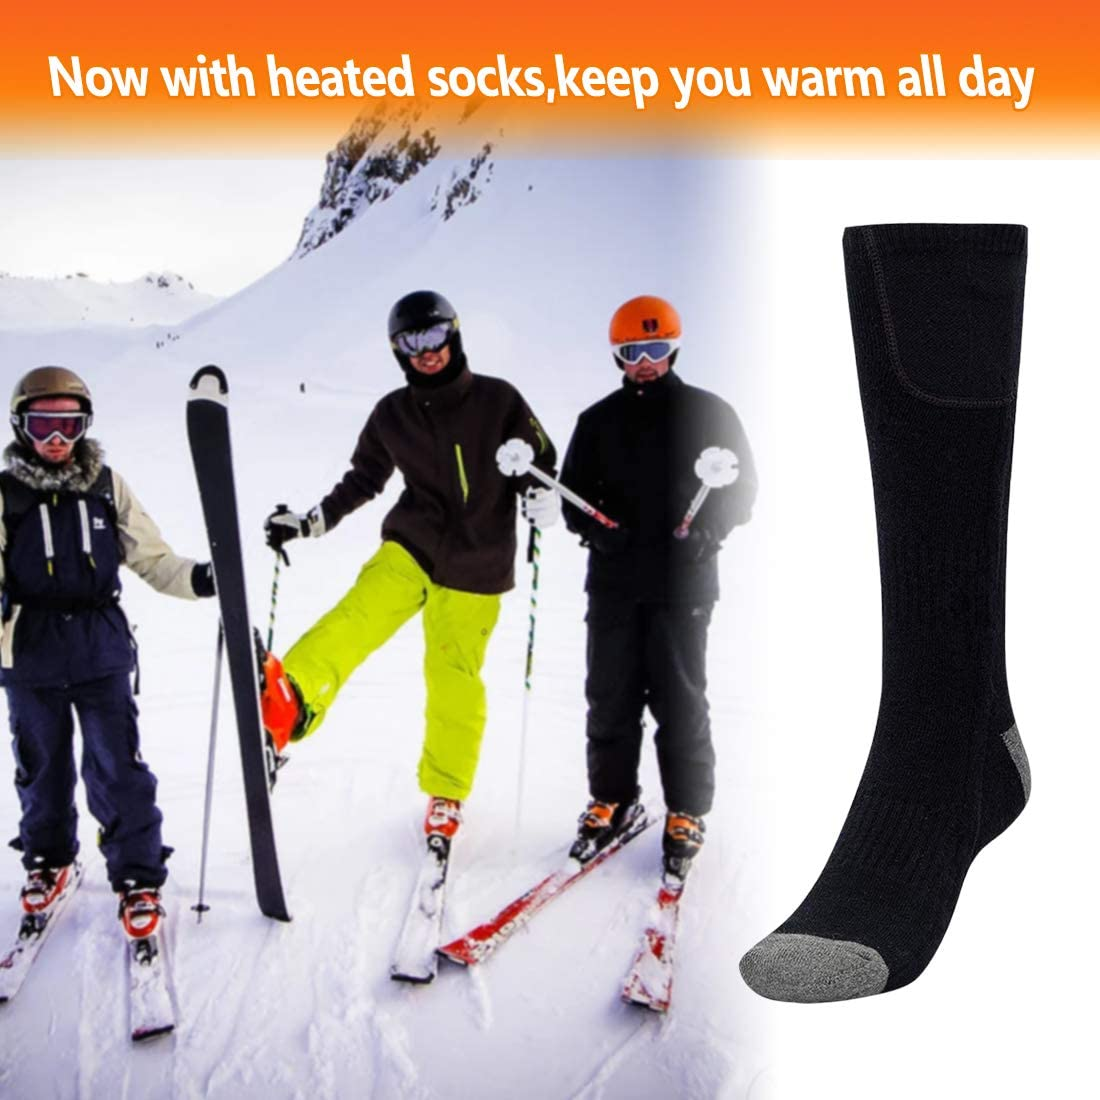 Pack of 2 Pairs MiniTeasure Electric Socks for Women/&Men Unisex Electric Heated Sock Black Color Winter feet Warmers with Rechargeable Battery